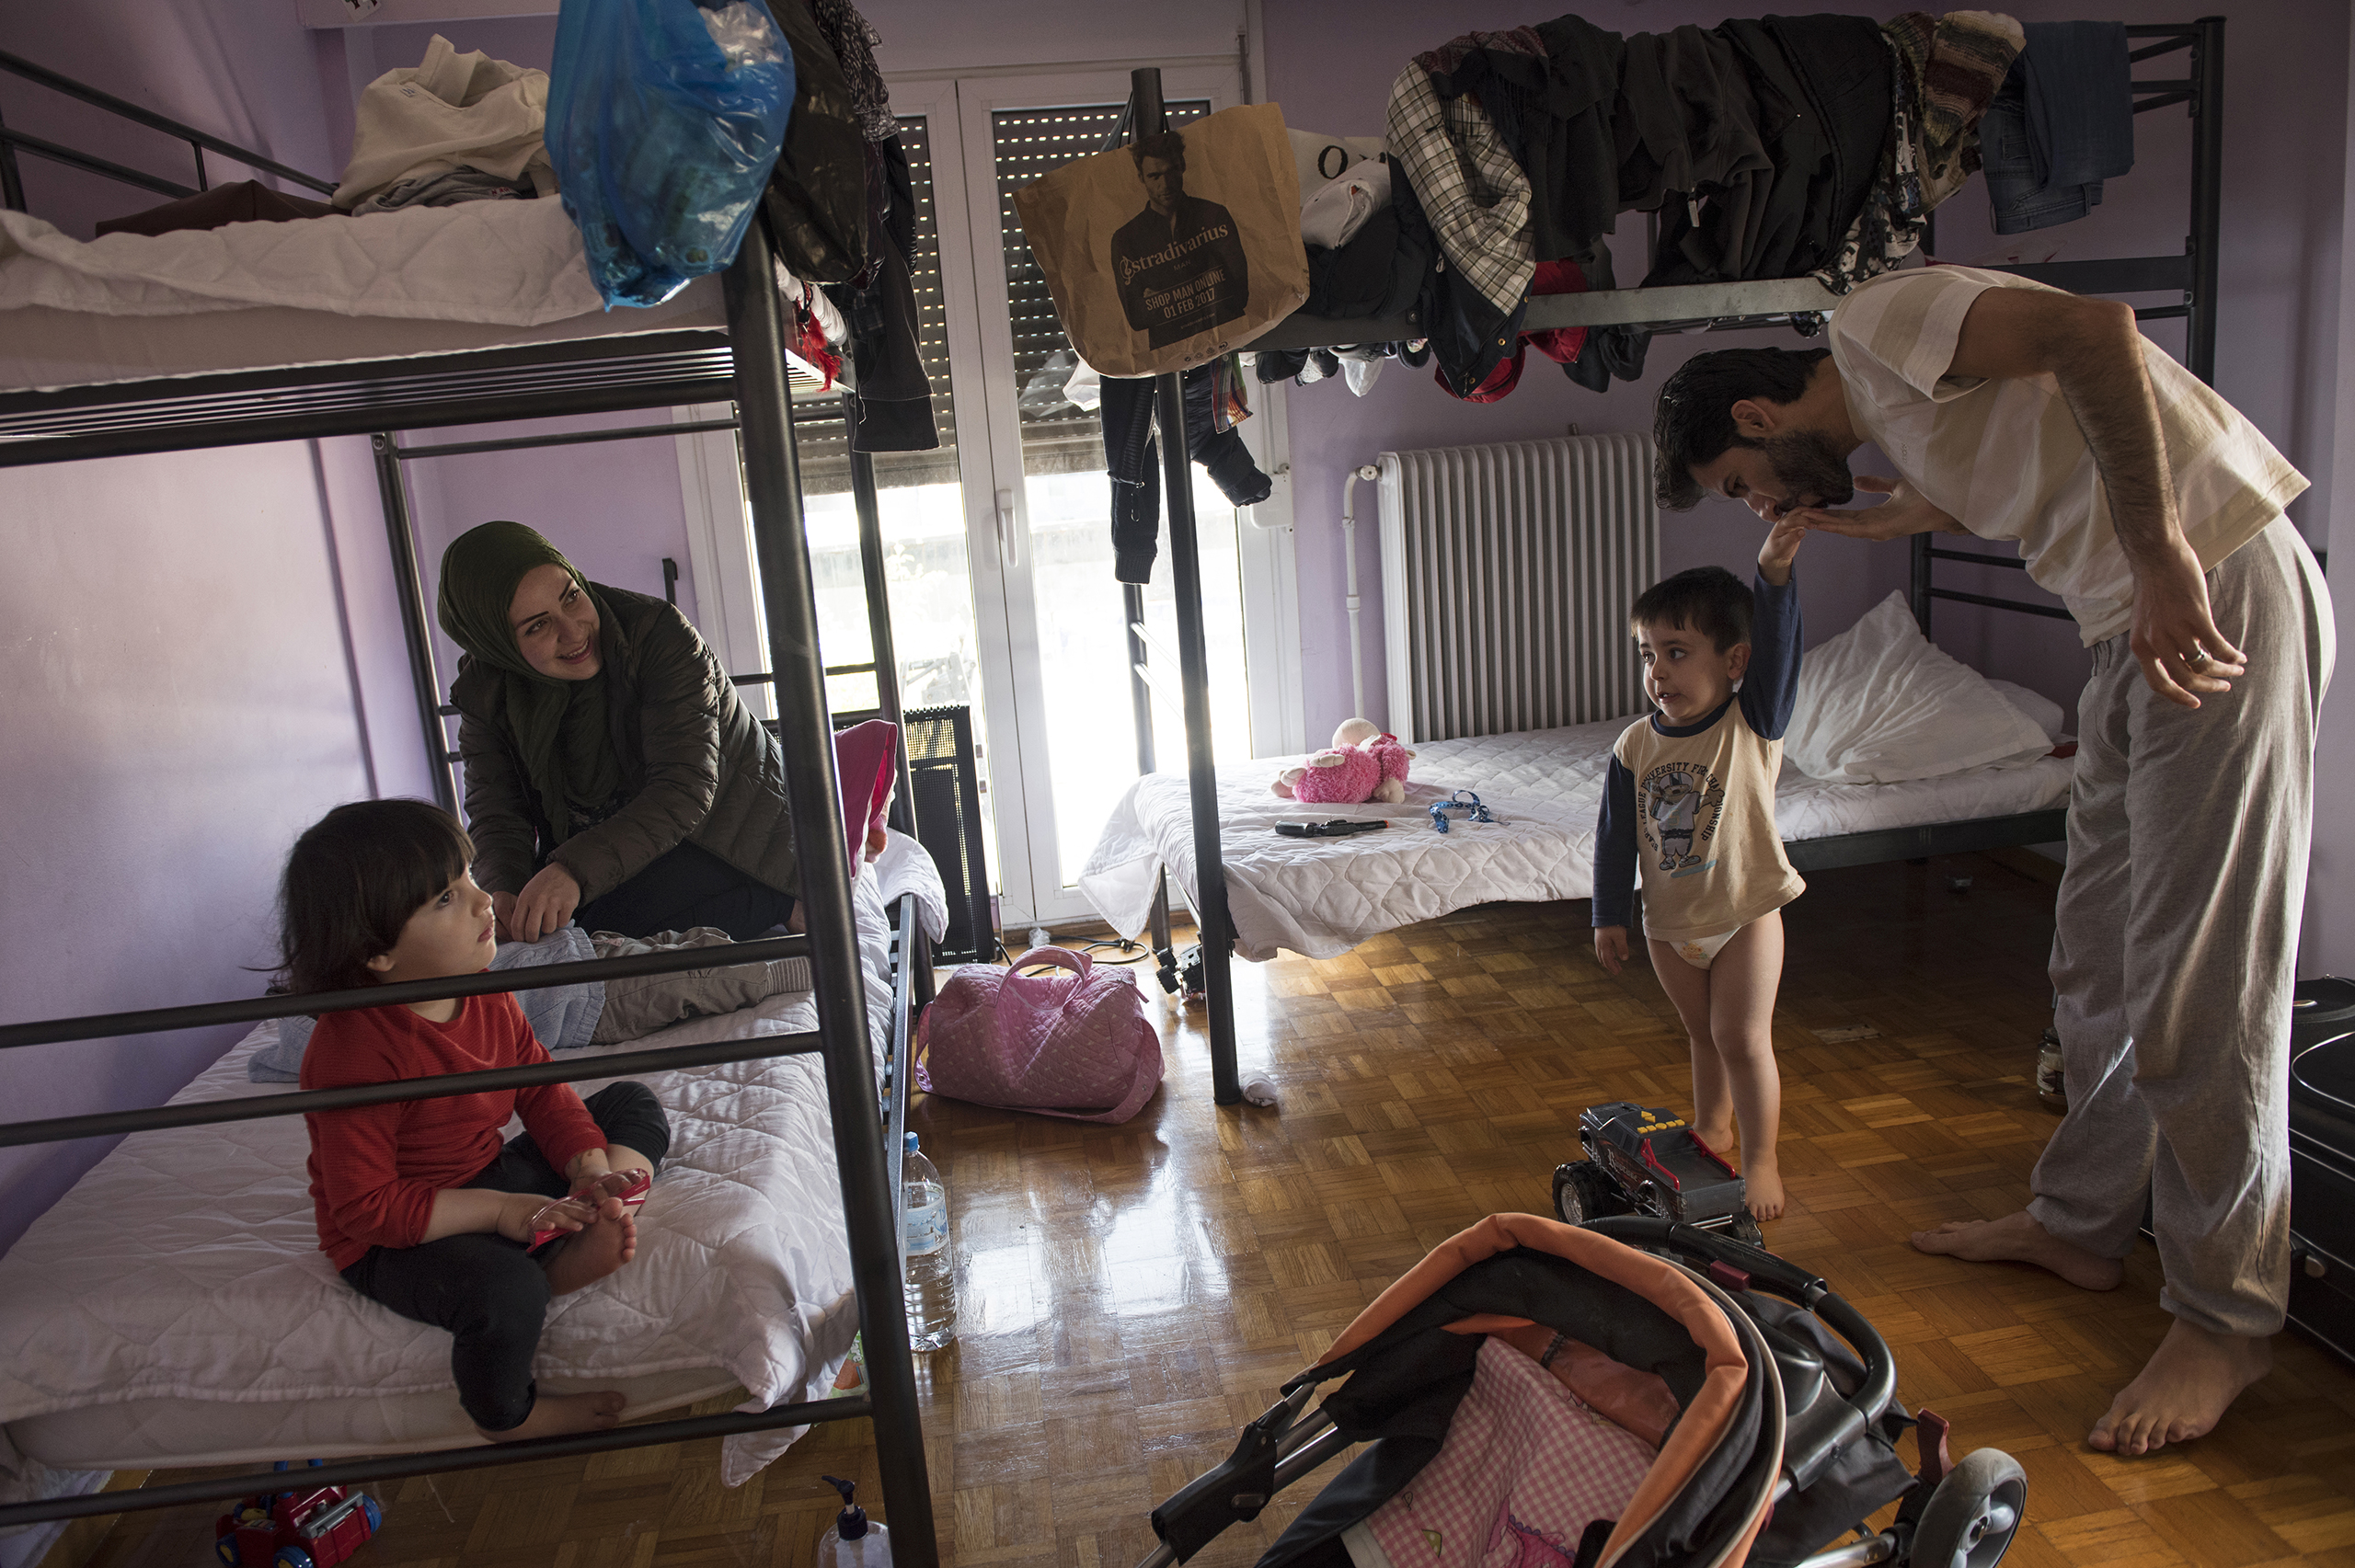 Syrian refugee, Taima, prepares to take her 6 month old daughter, Heln, for a visit to the Acropolis, while her husband, Muhannad Abzali, 28, jokes around with their other child, Wael, 3, at the temporary apartment they are staying at in Athens, Greece, March 31, 2017.